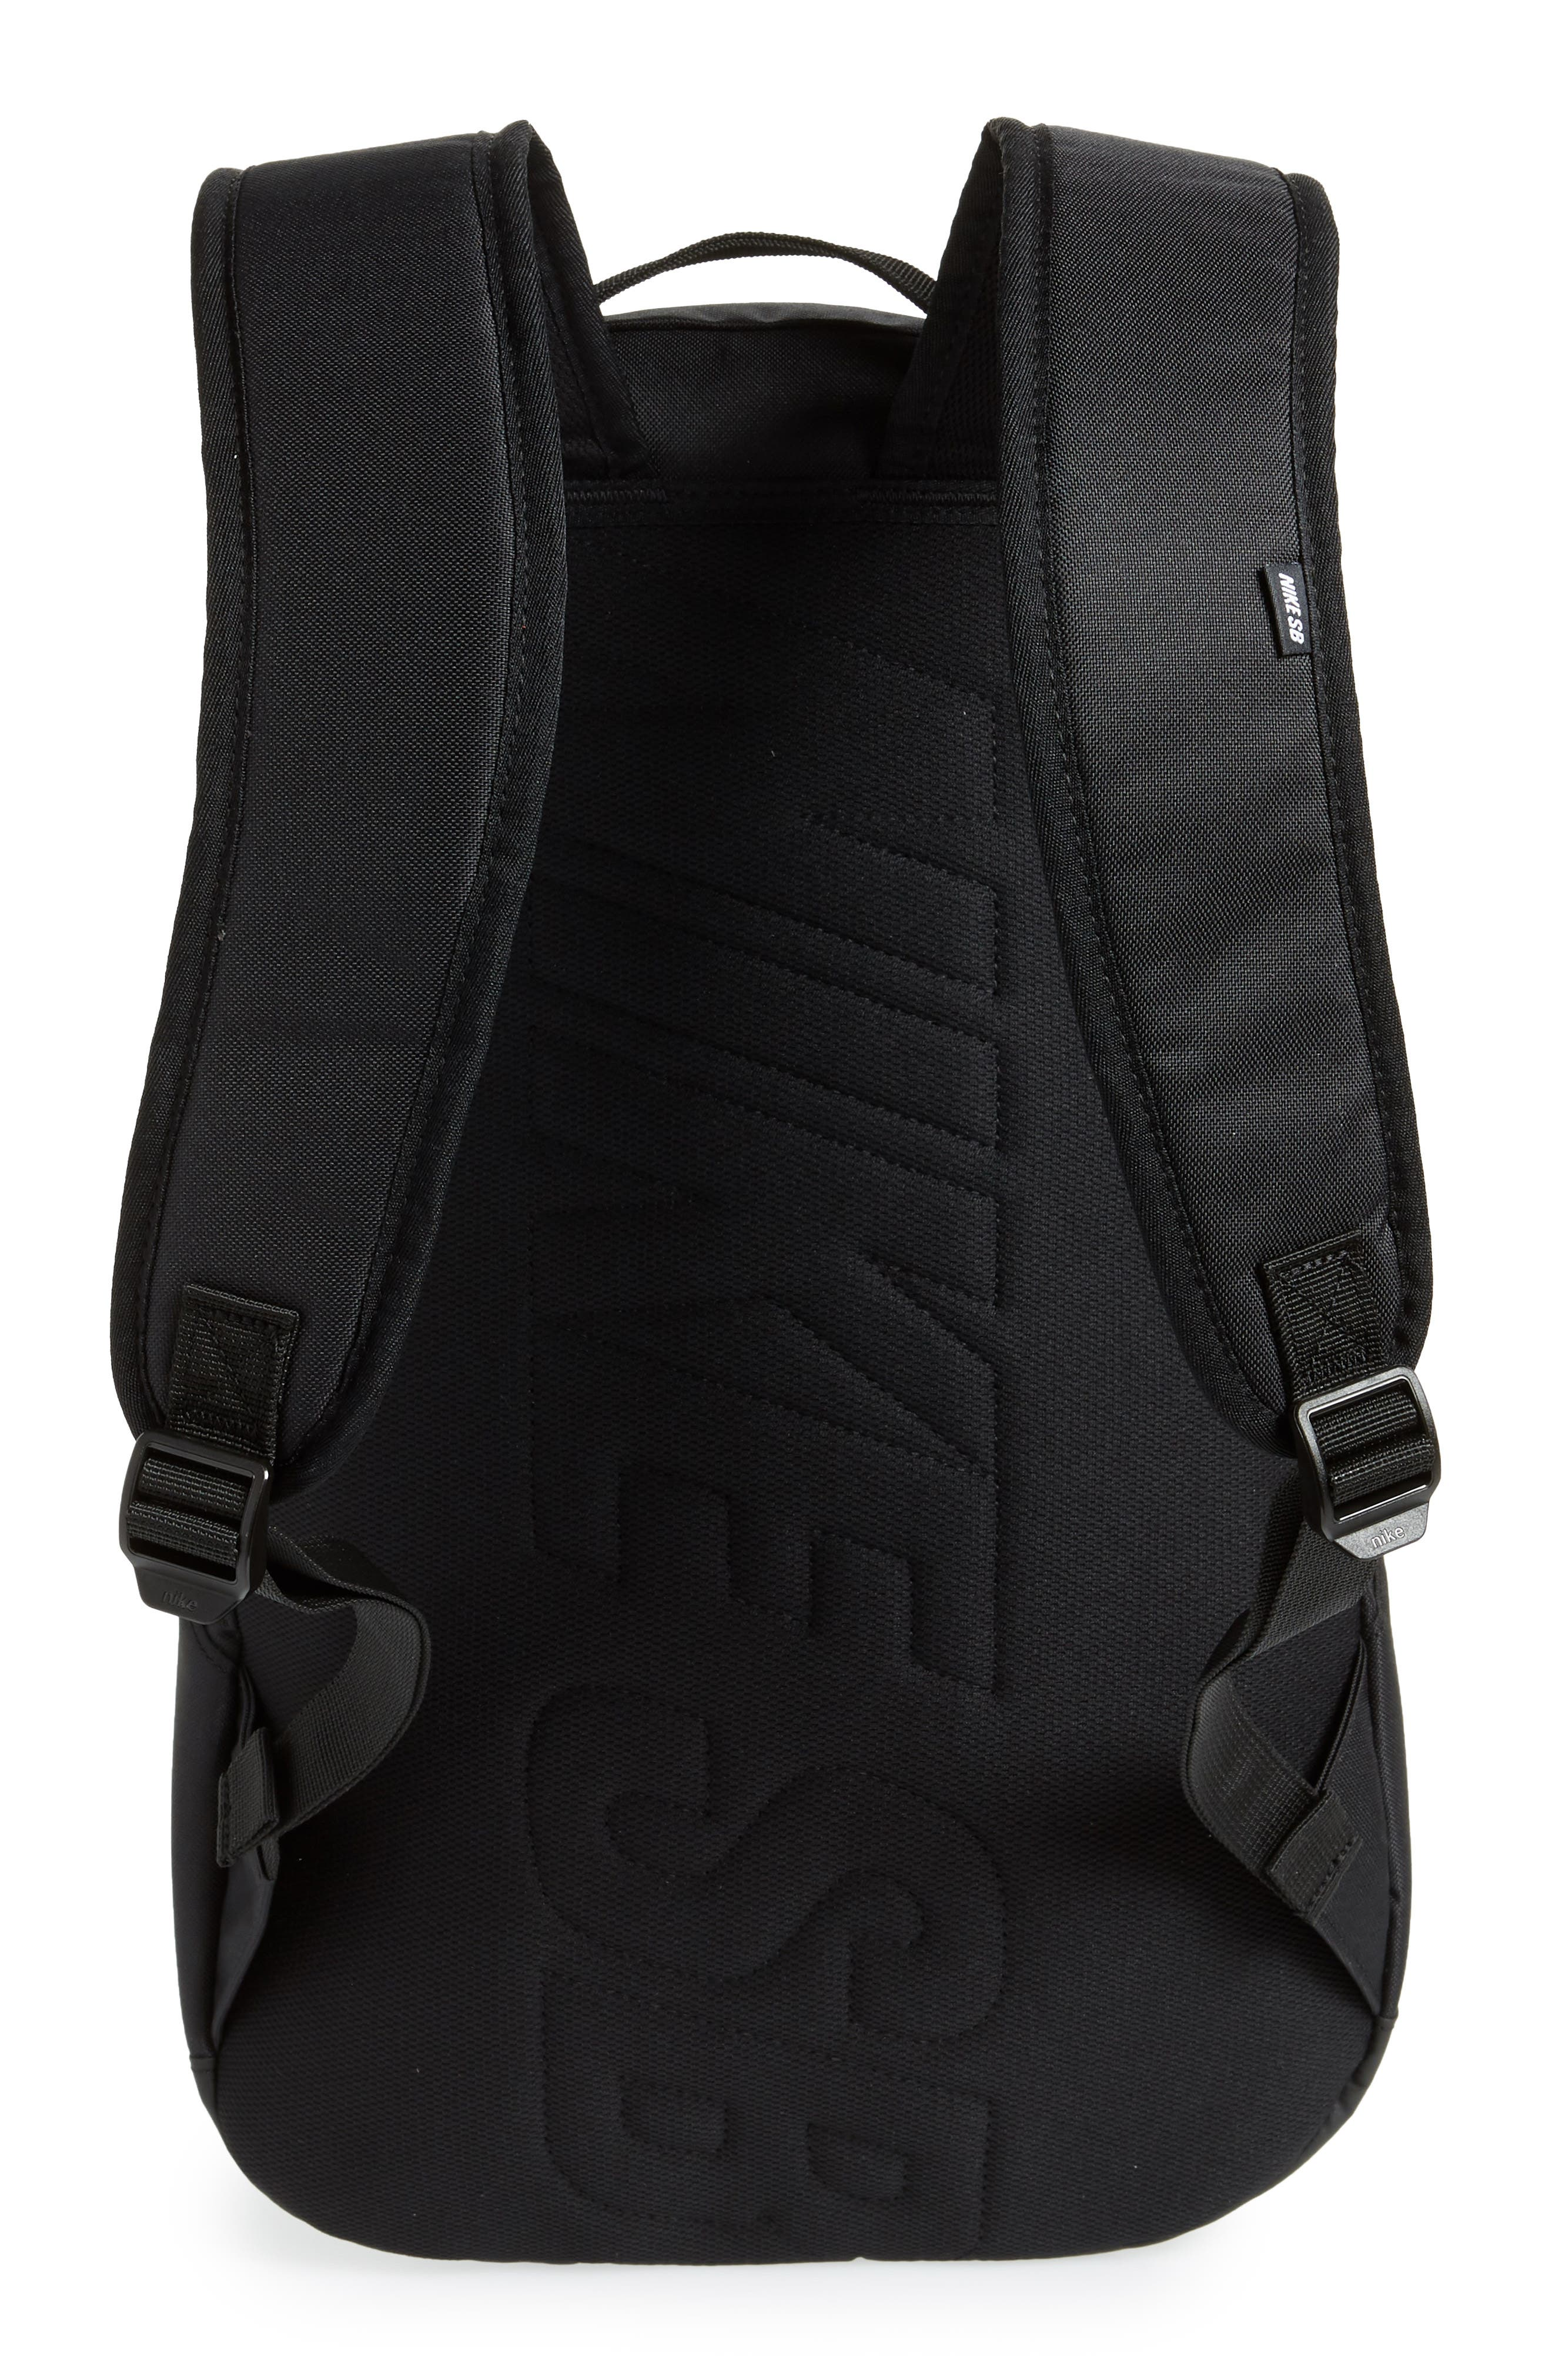 Courthouse Backpack,                             Alternate thumbnail 3, color,                             Black